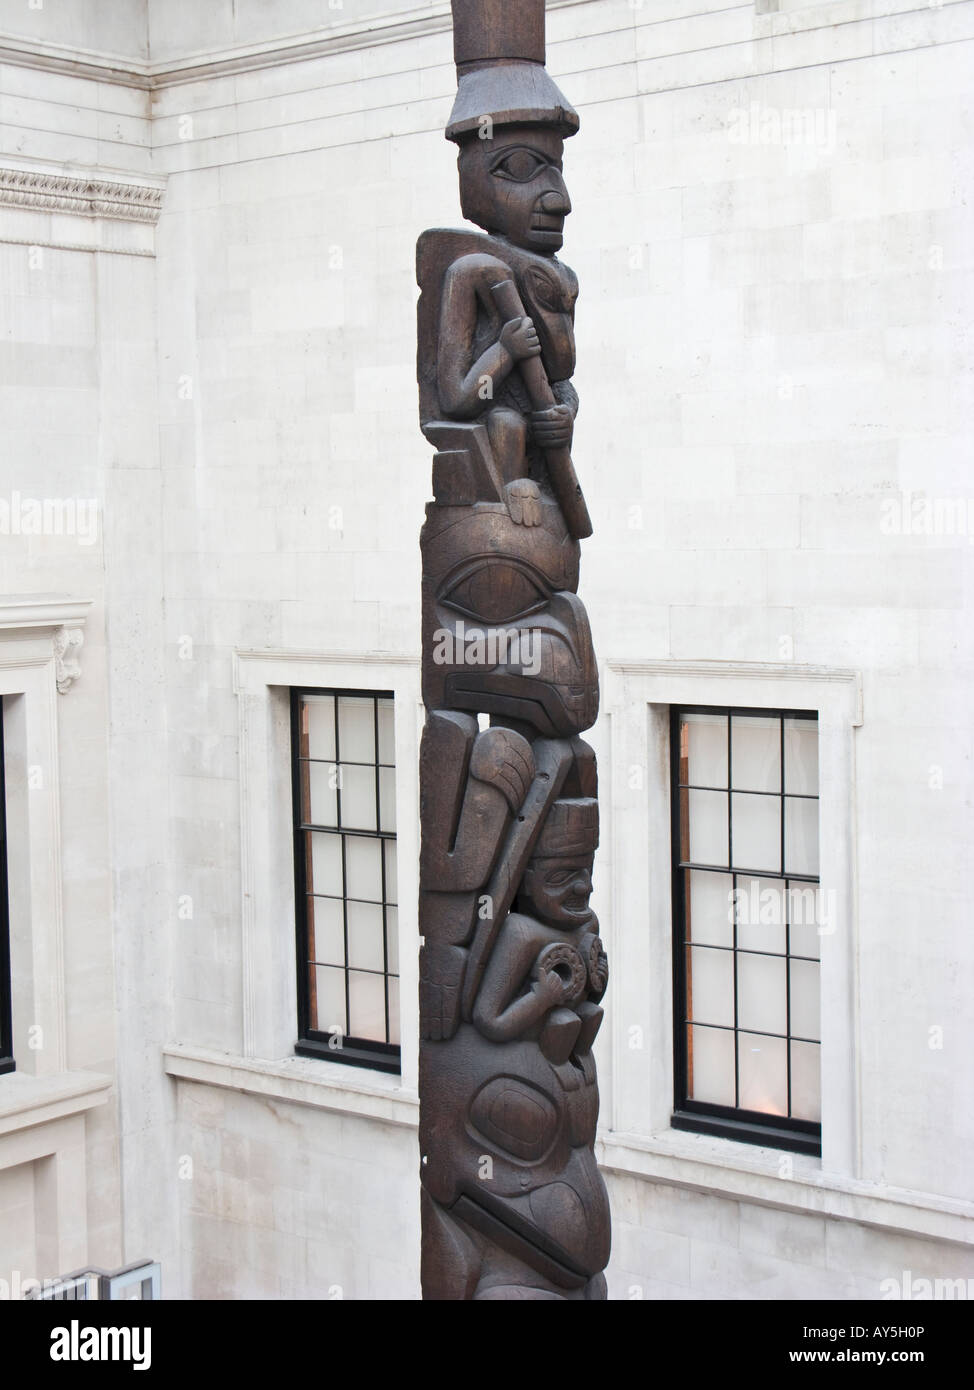 British Museum Great Court, Haida totem pole - Stock Image